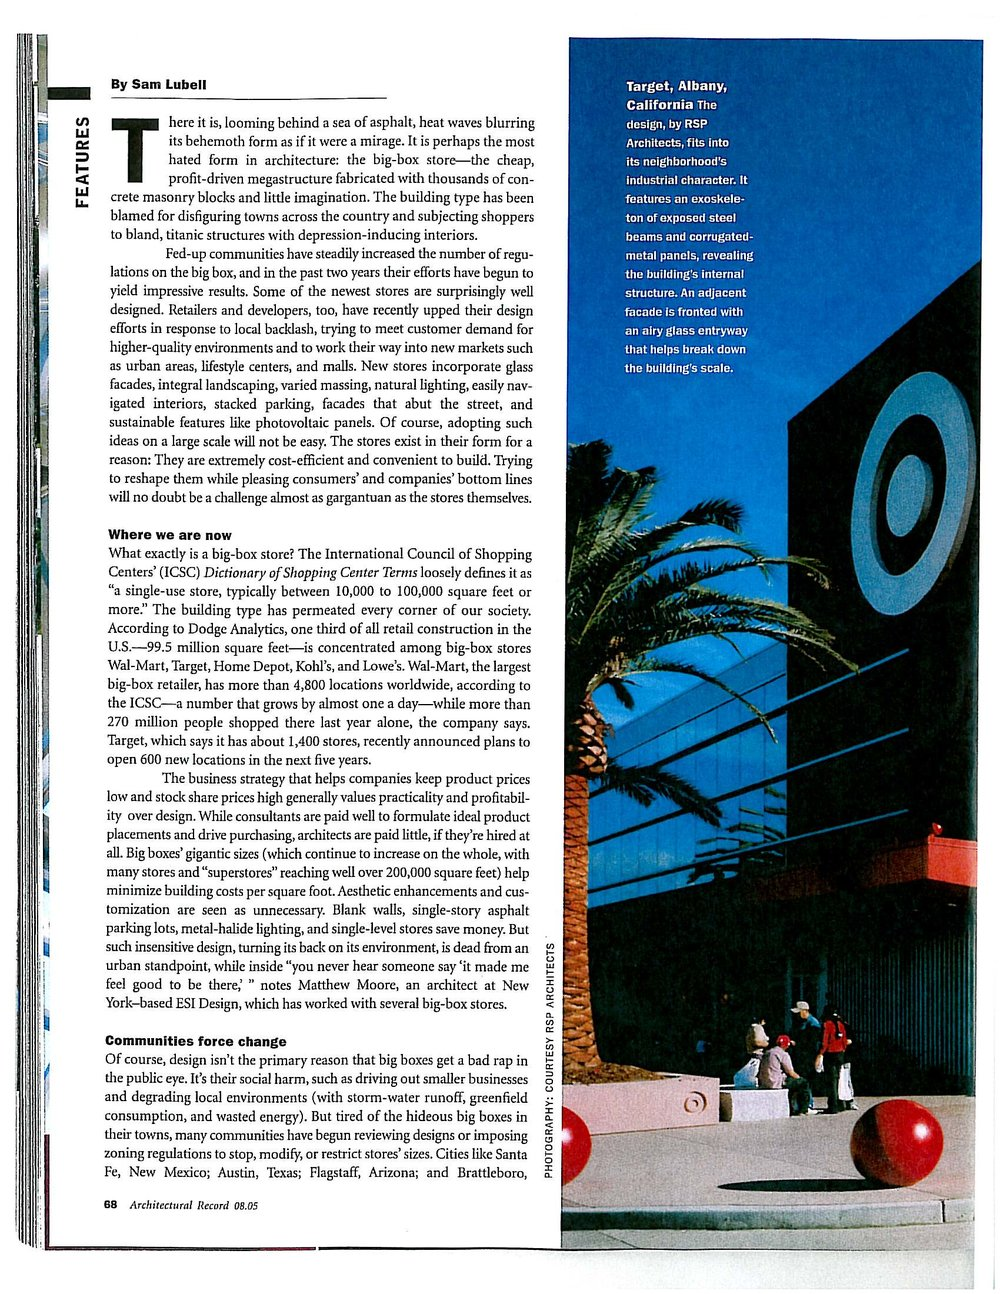 200508_Architectural Record Magazine_HD WMT_Page_3.jpg